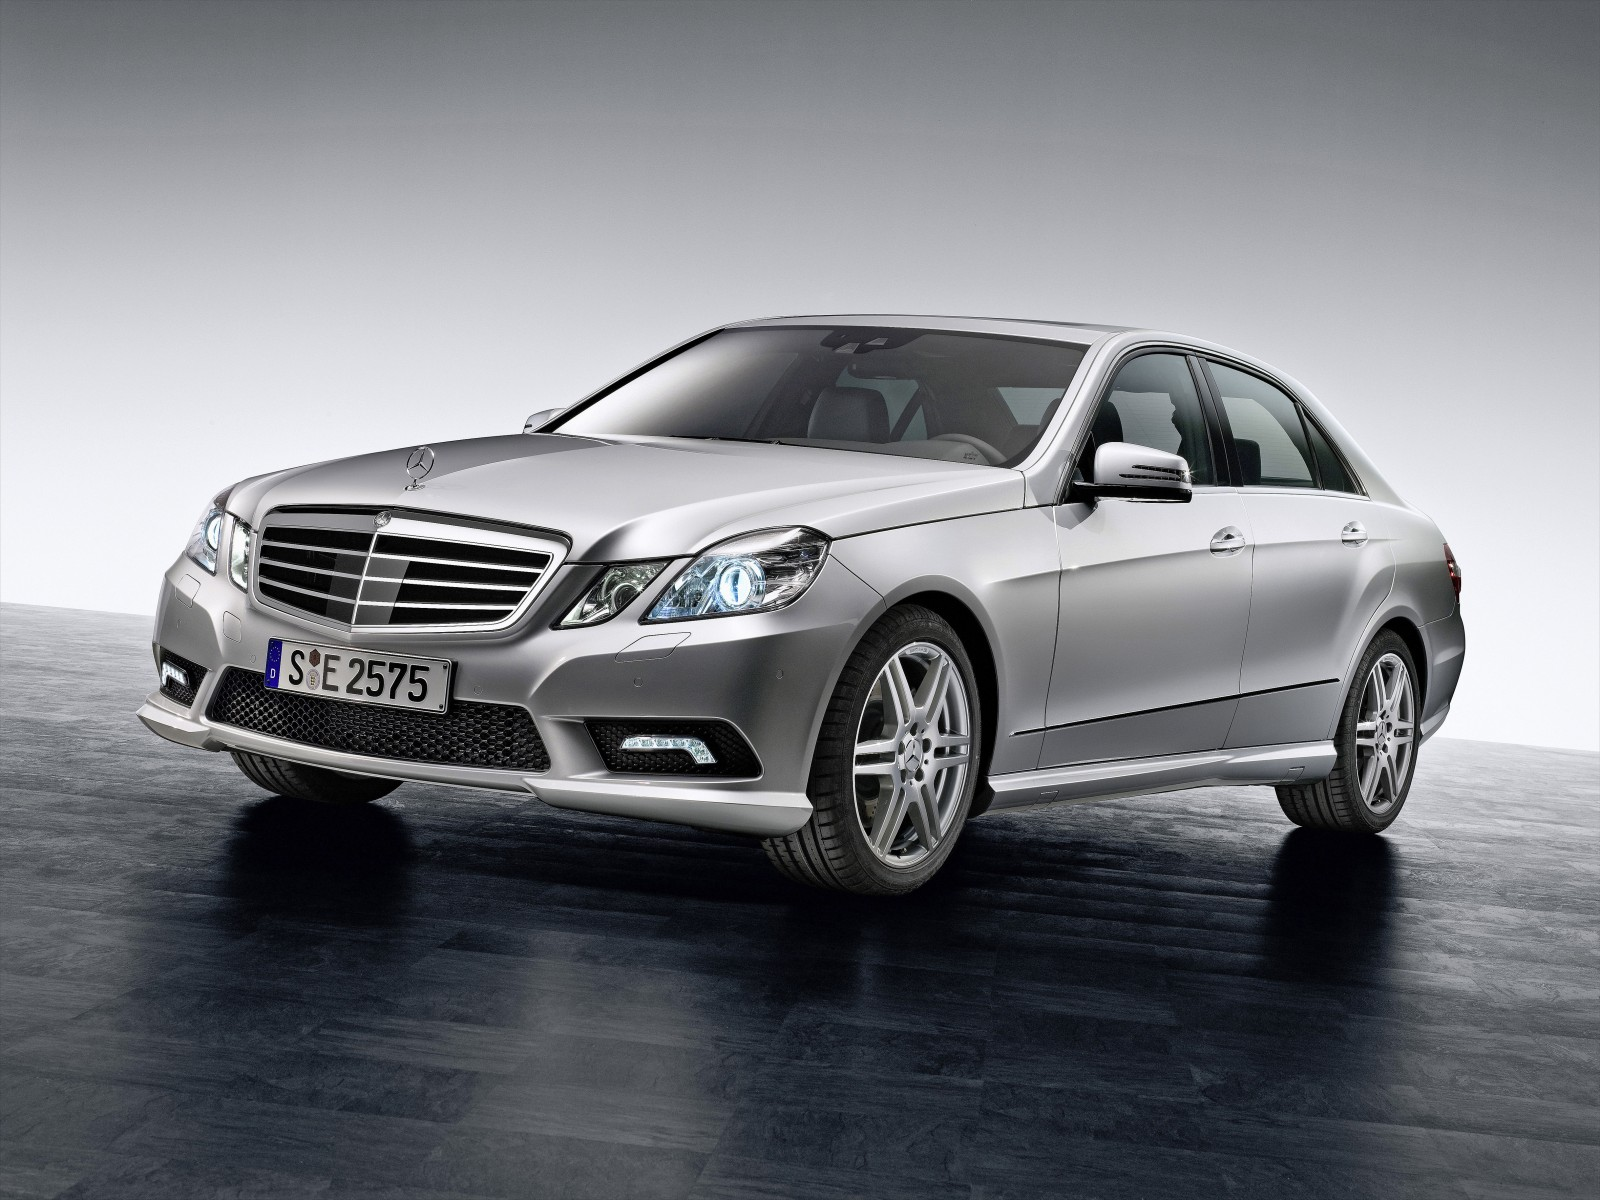 2009 mercedes benz e class motor desktop for Mercedes benz service promotional code